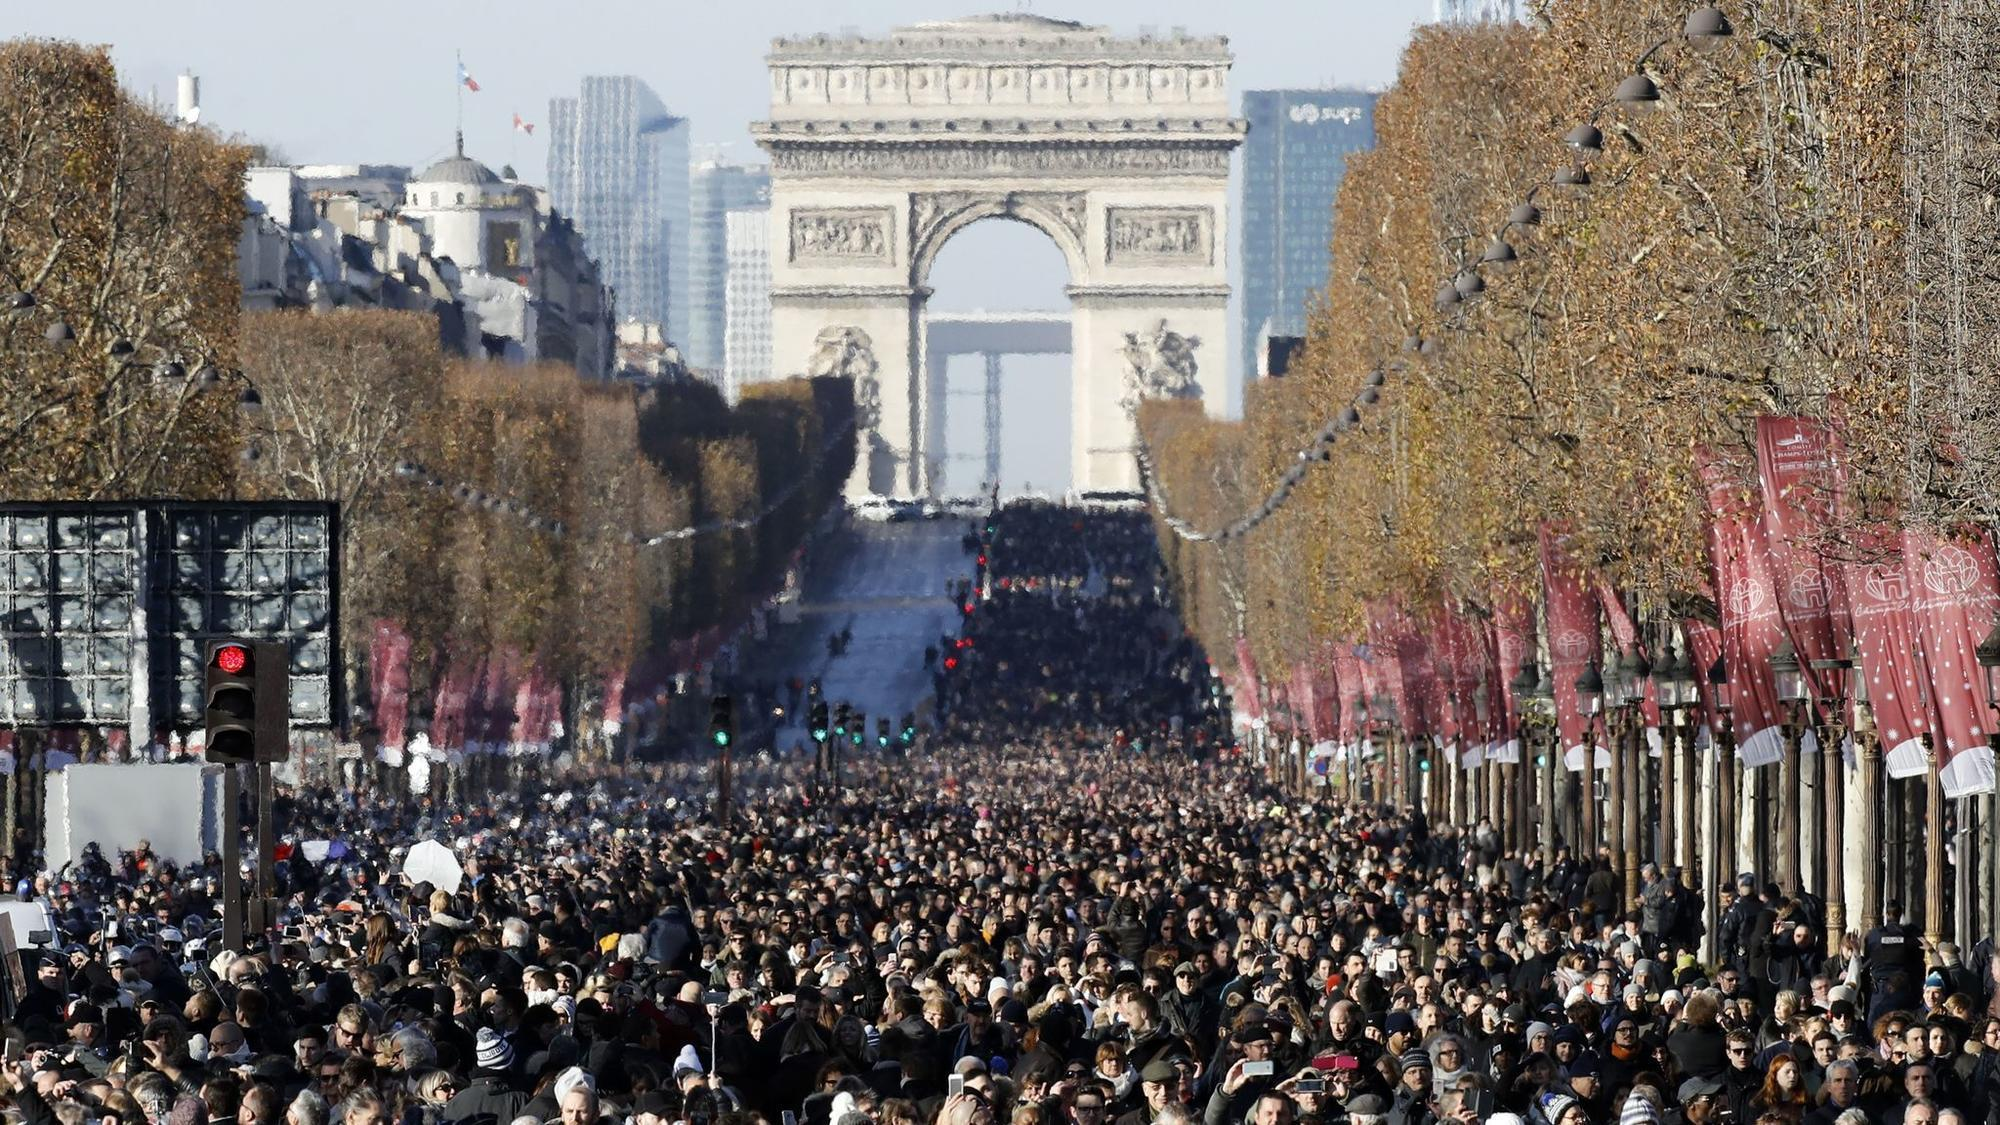 Johnny Hallyday Death >> Johnny Hallyday's fans fill Paris streets to bid adieu to 'French Elvis' - LA Times